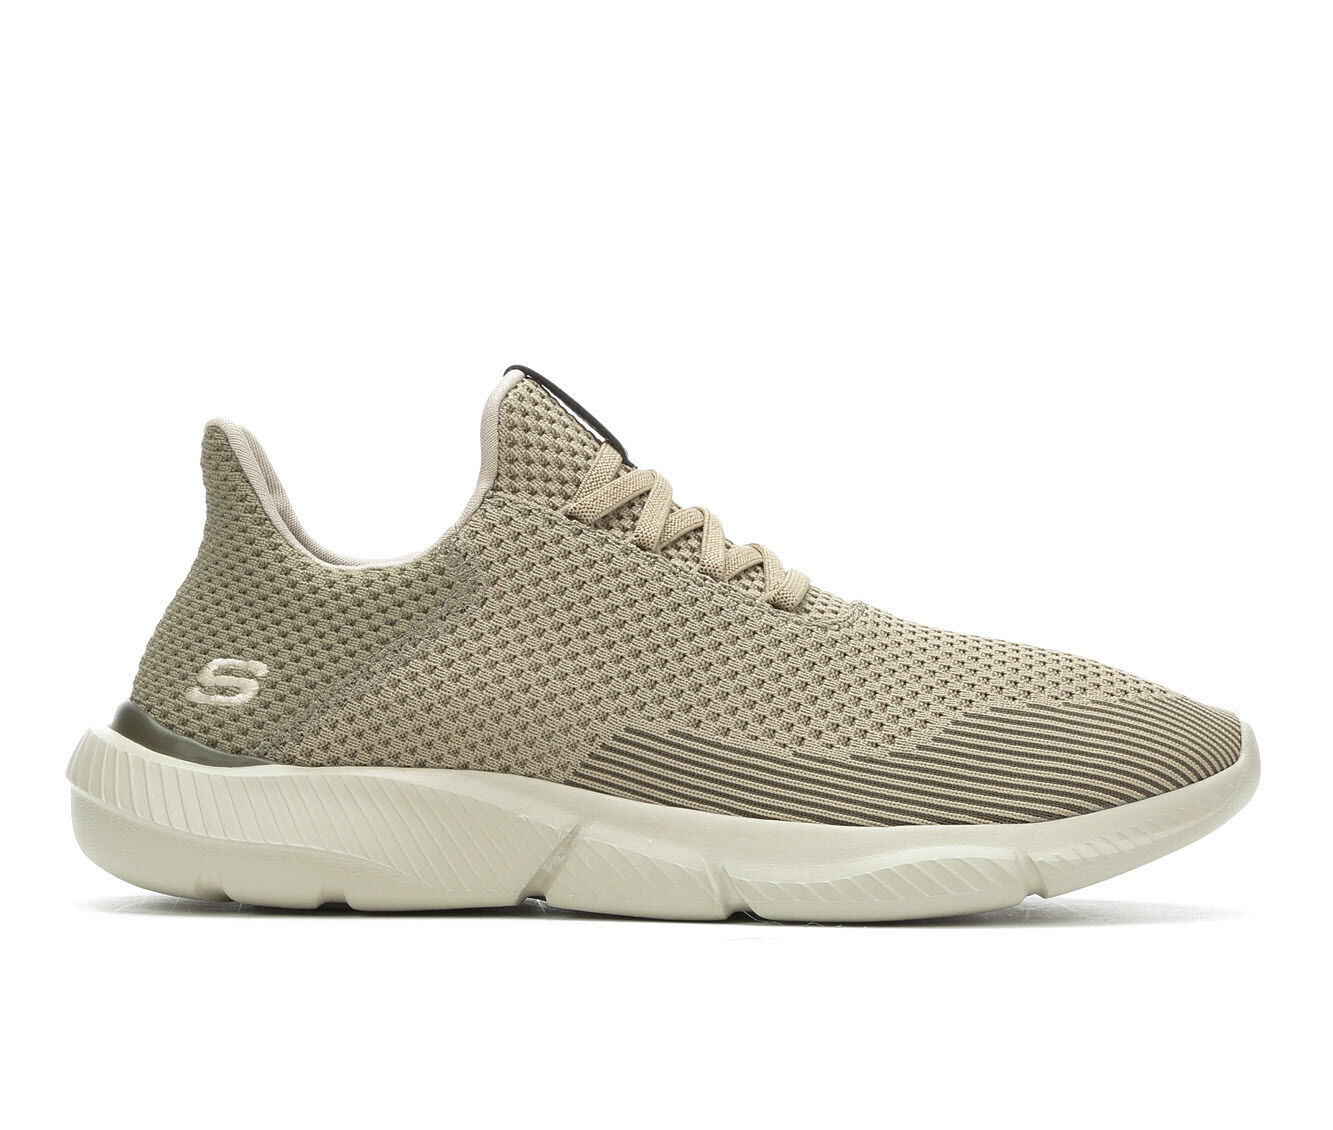 buy authentic Men's Skechers Taison 65867 Casual Shoes Dark Taupe